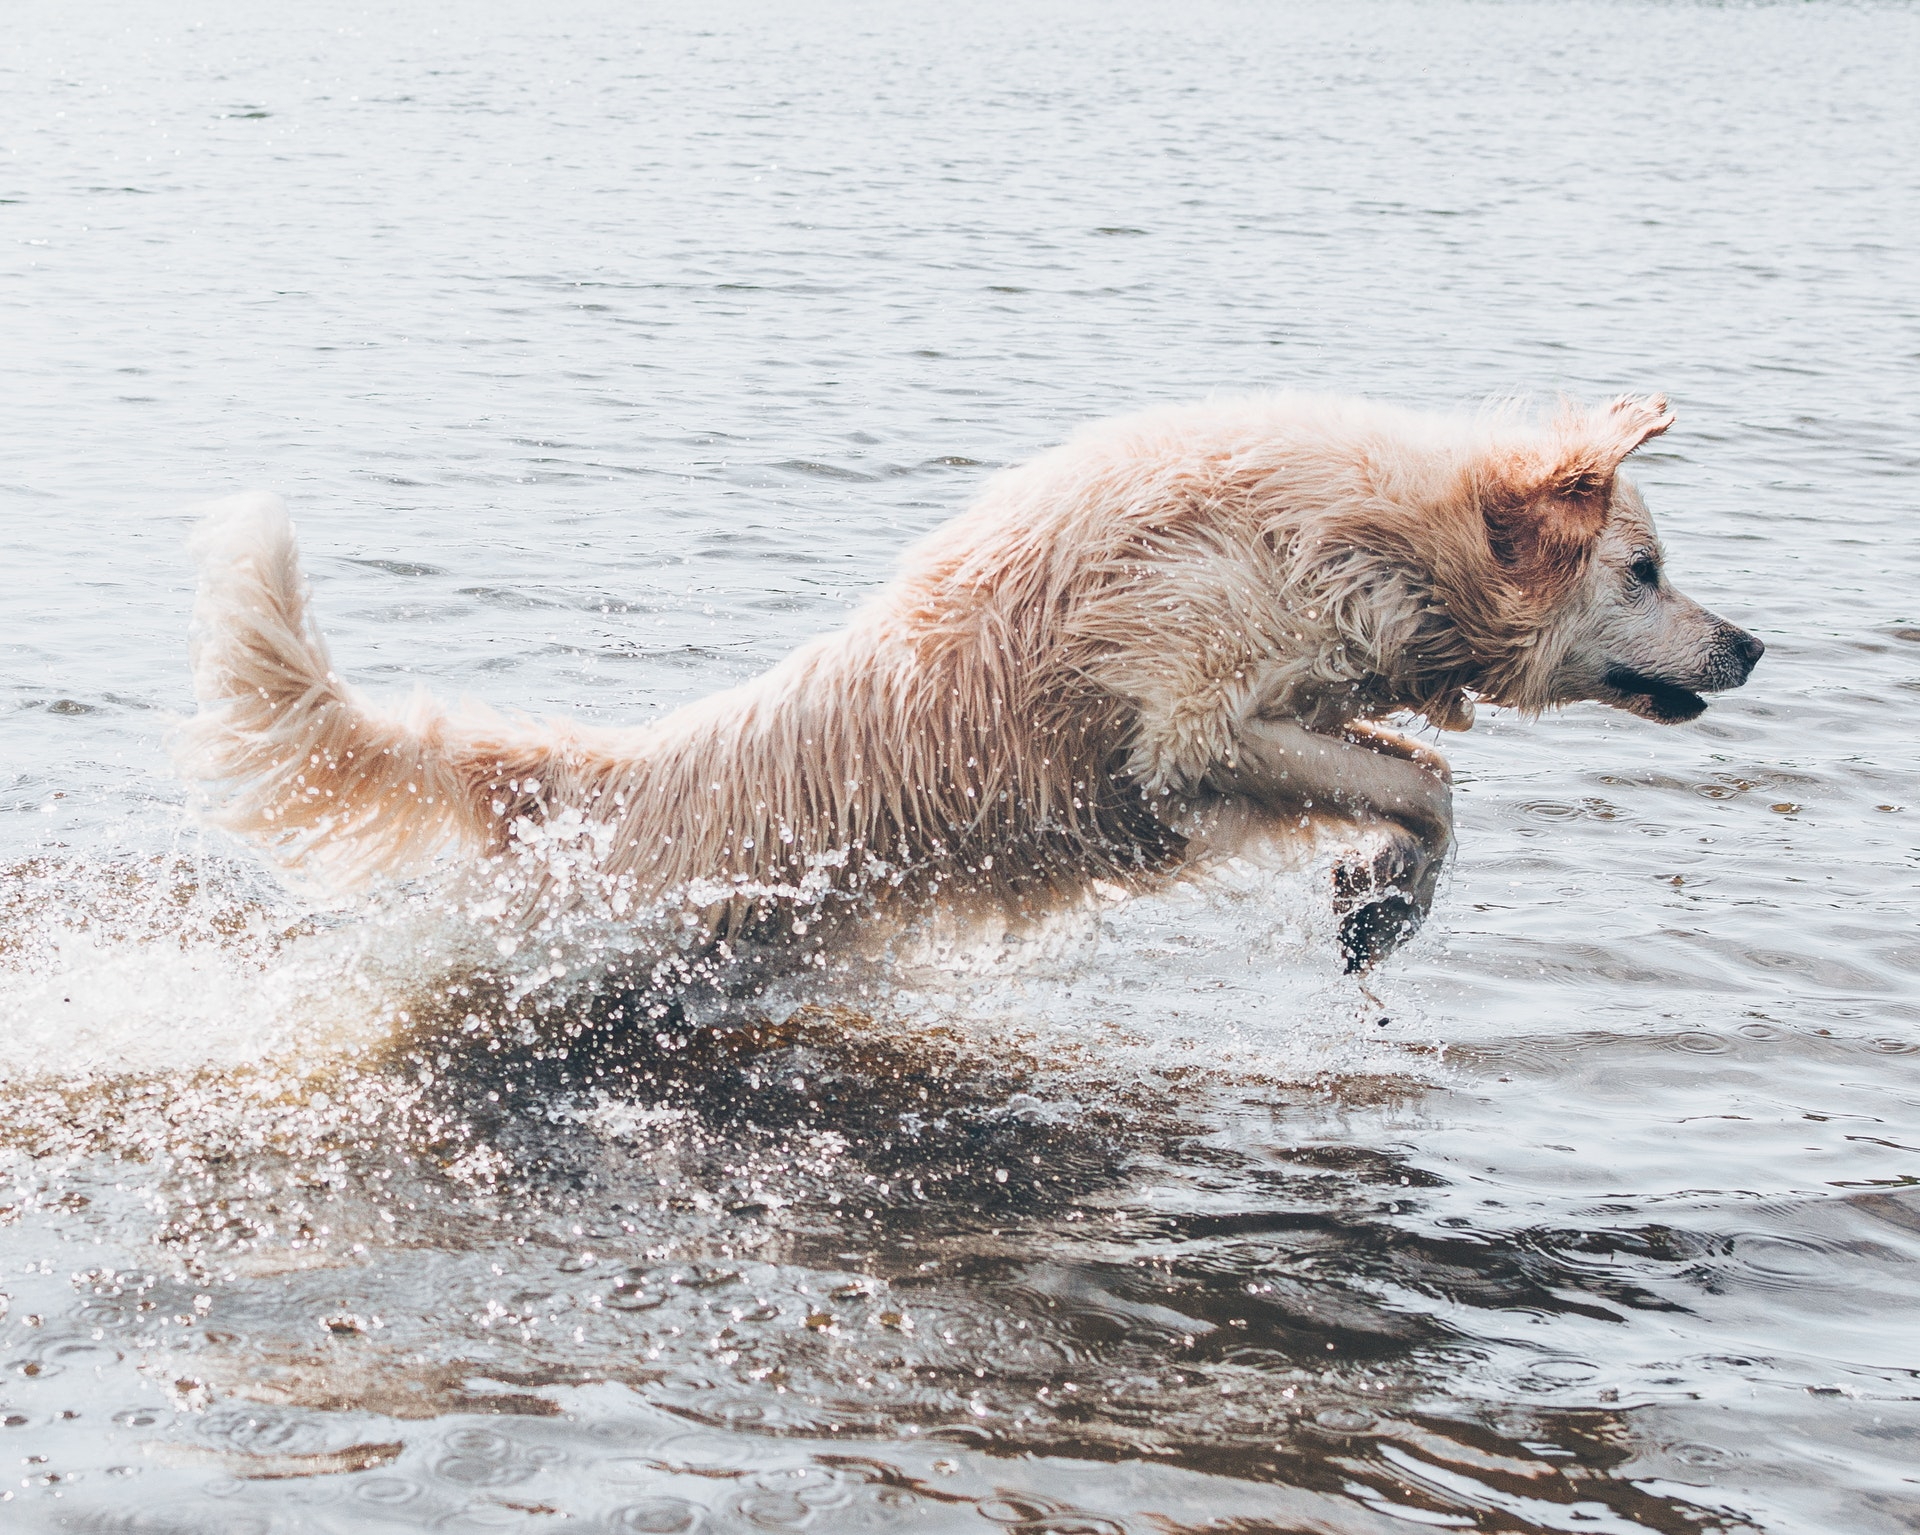 dog leaping through ocean